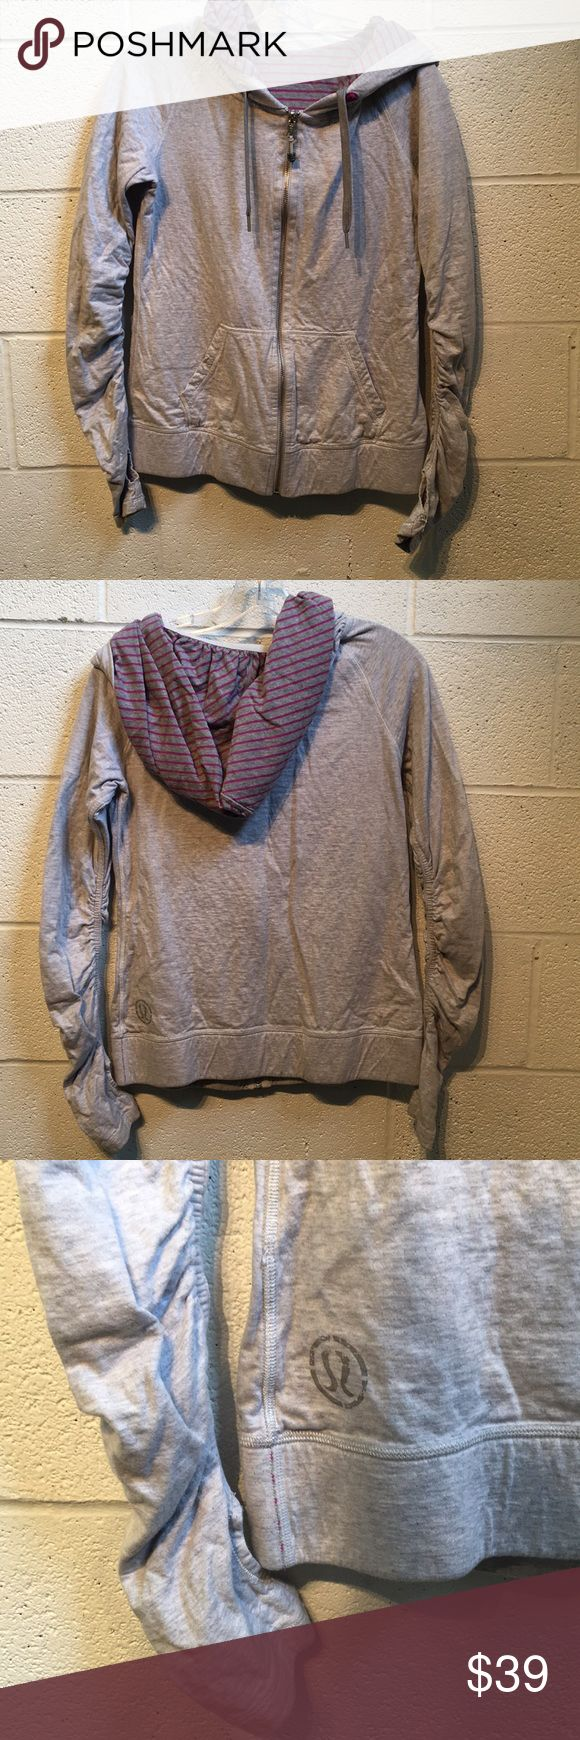 Lululemon grey zip up hoodie size 8. 57723 Lululemon grey zip up hoodie with pockets, purple and grey striped interior and ruched sleeves. Size 8. Excellent used condition, 57723 lululemon athletica Jackets & Coats